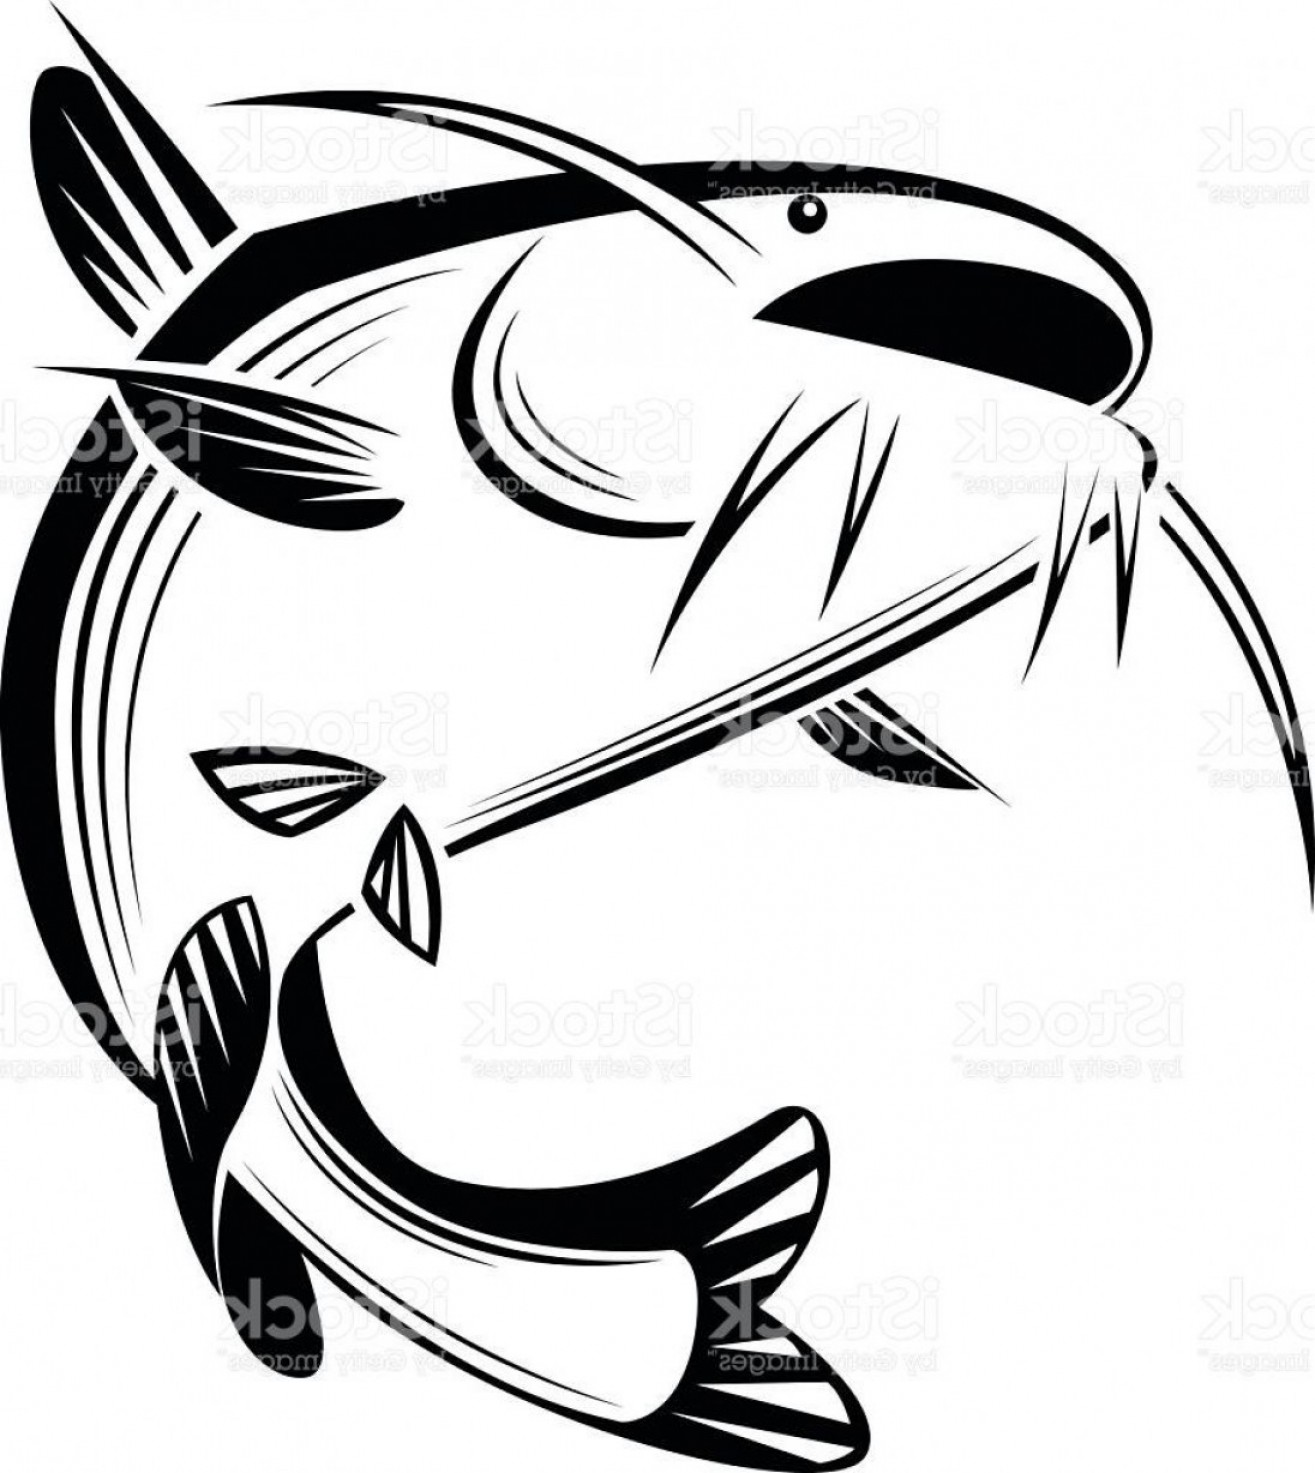 Best Free Graphic Catfish Vector Cdr.